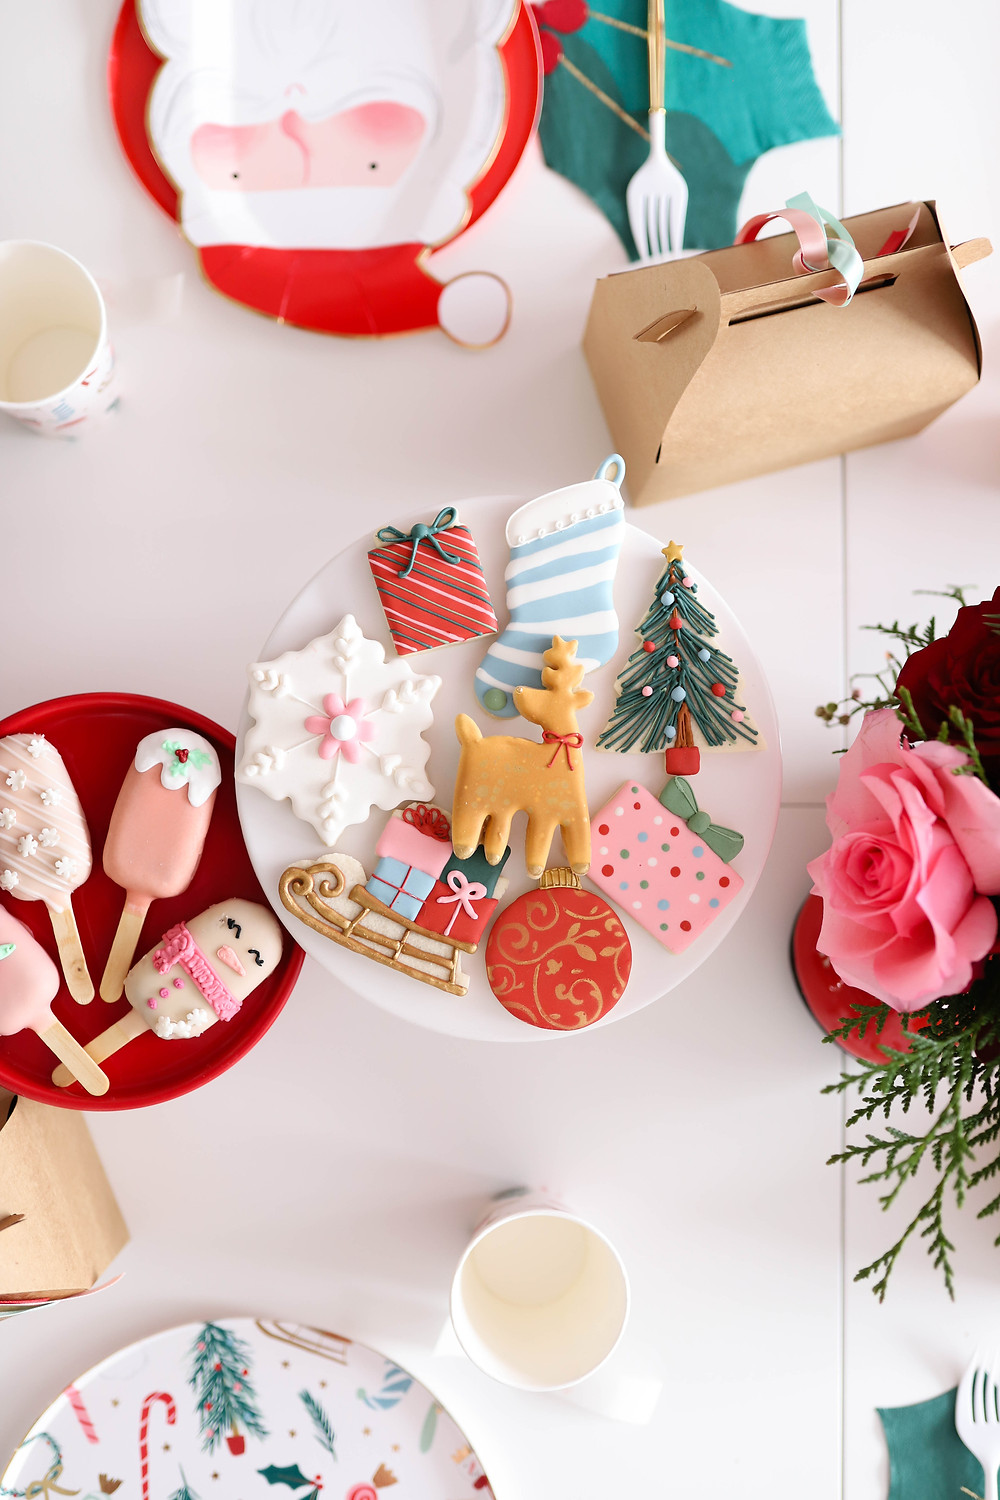 A plate of beautifully decorated christmas cookies on a white table at a kids christmas holiday party in the shape of snowflakes, presents, reindeer, sleighs and a christmas tree.